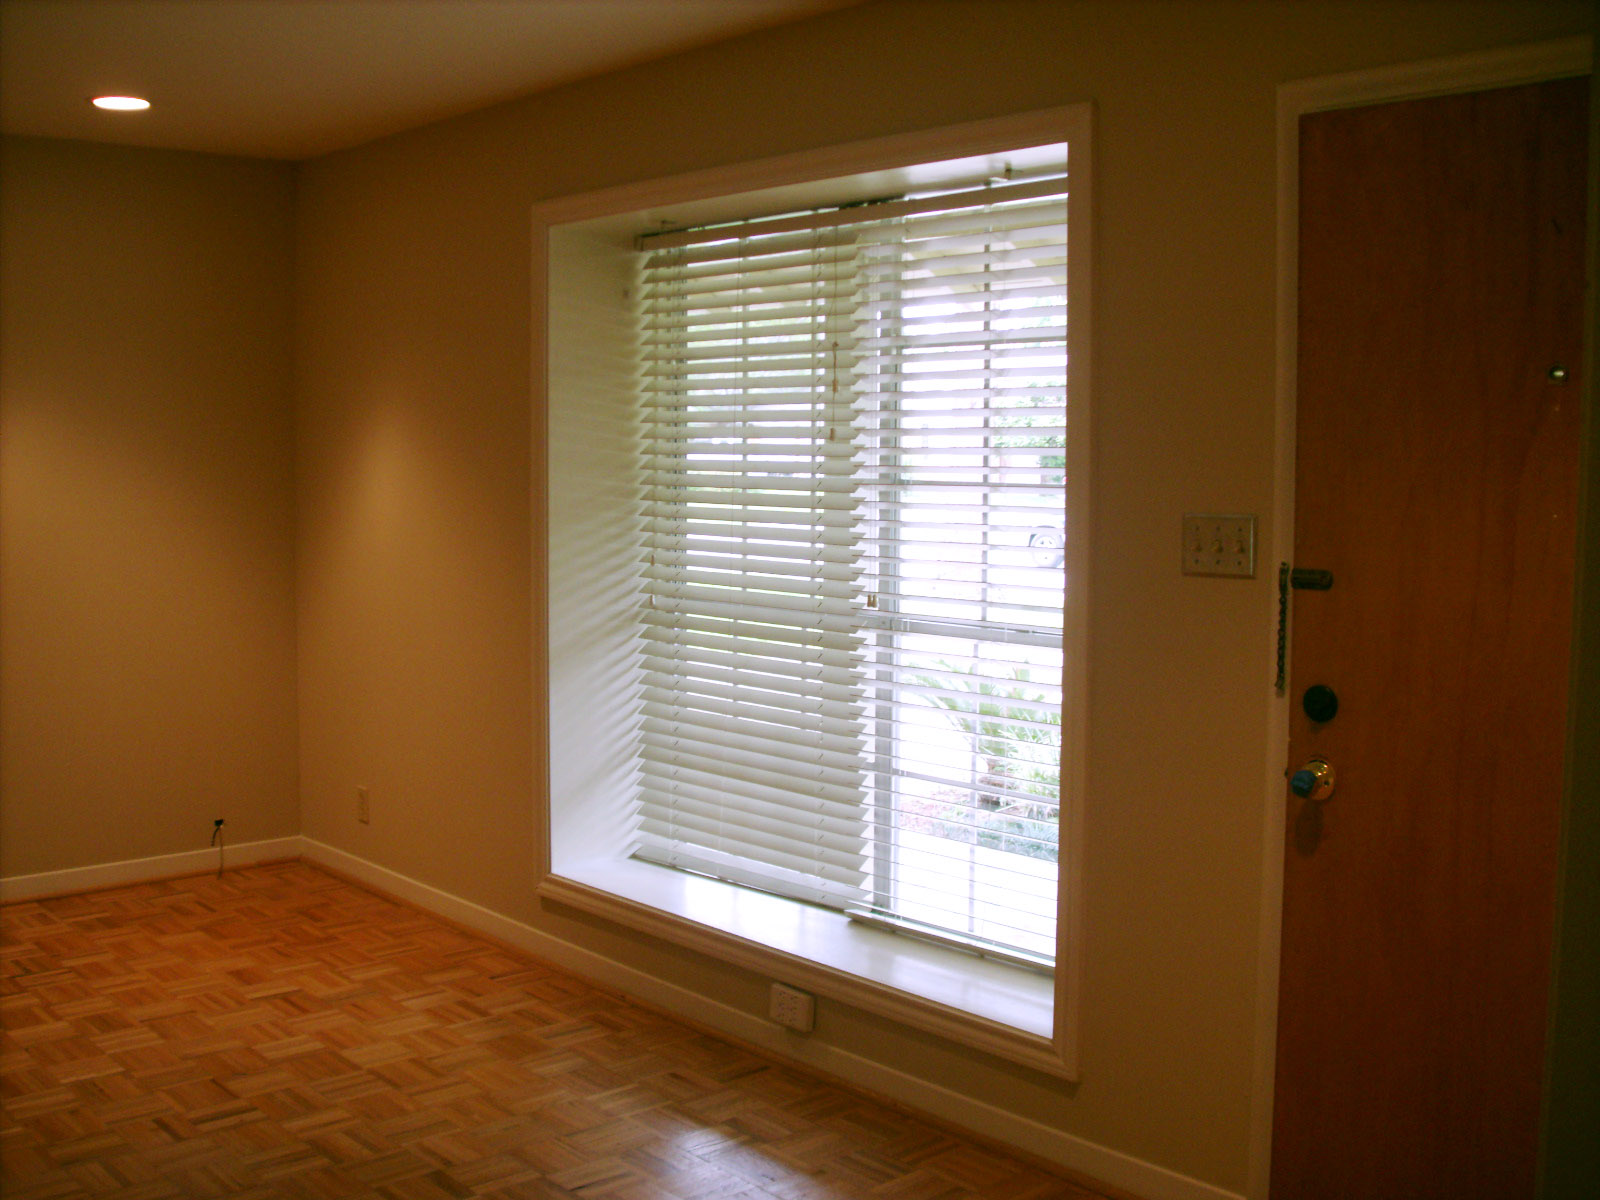 living room with large window, 4513 Hummingbird,Houston Texas real estate